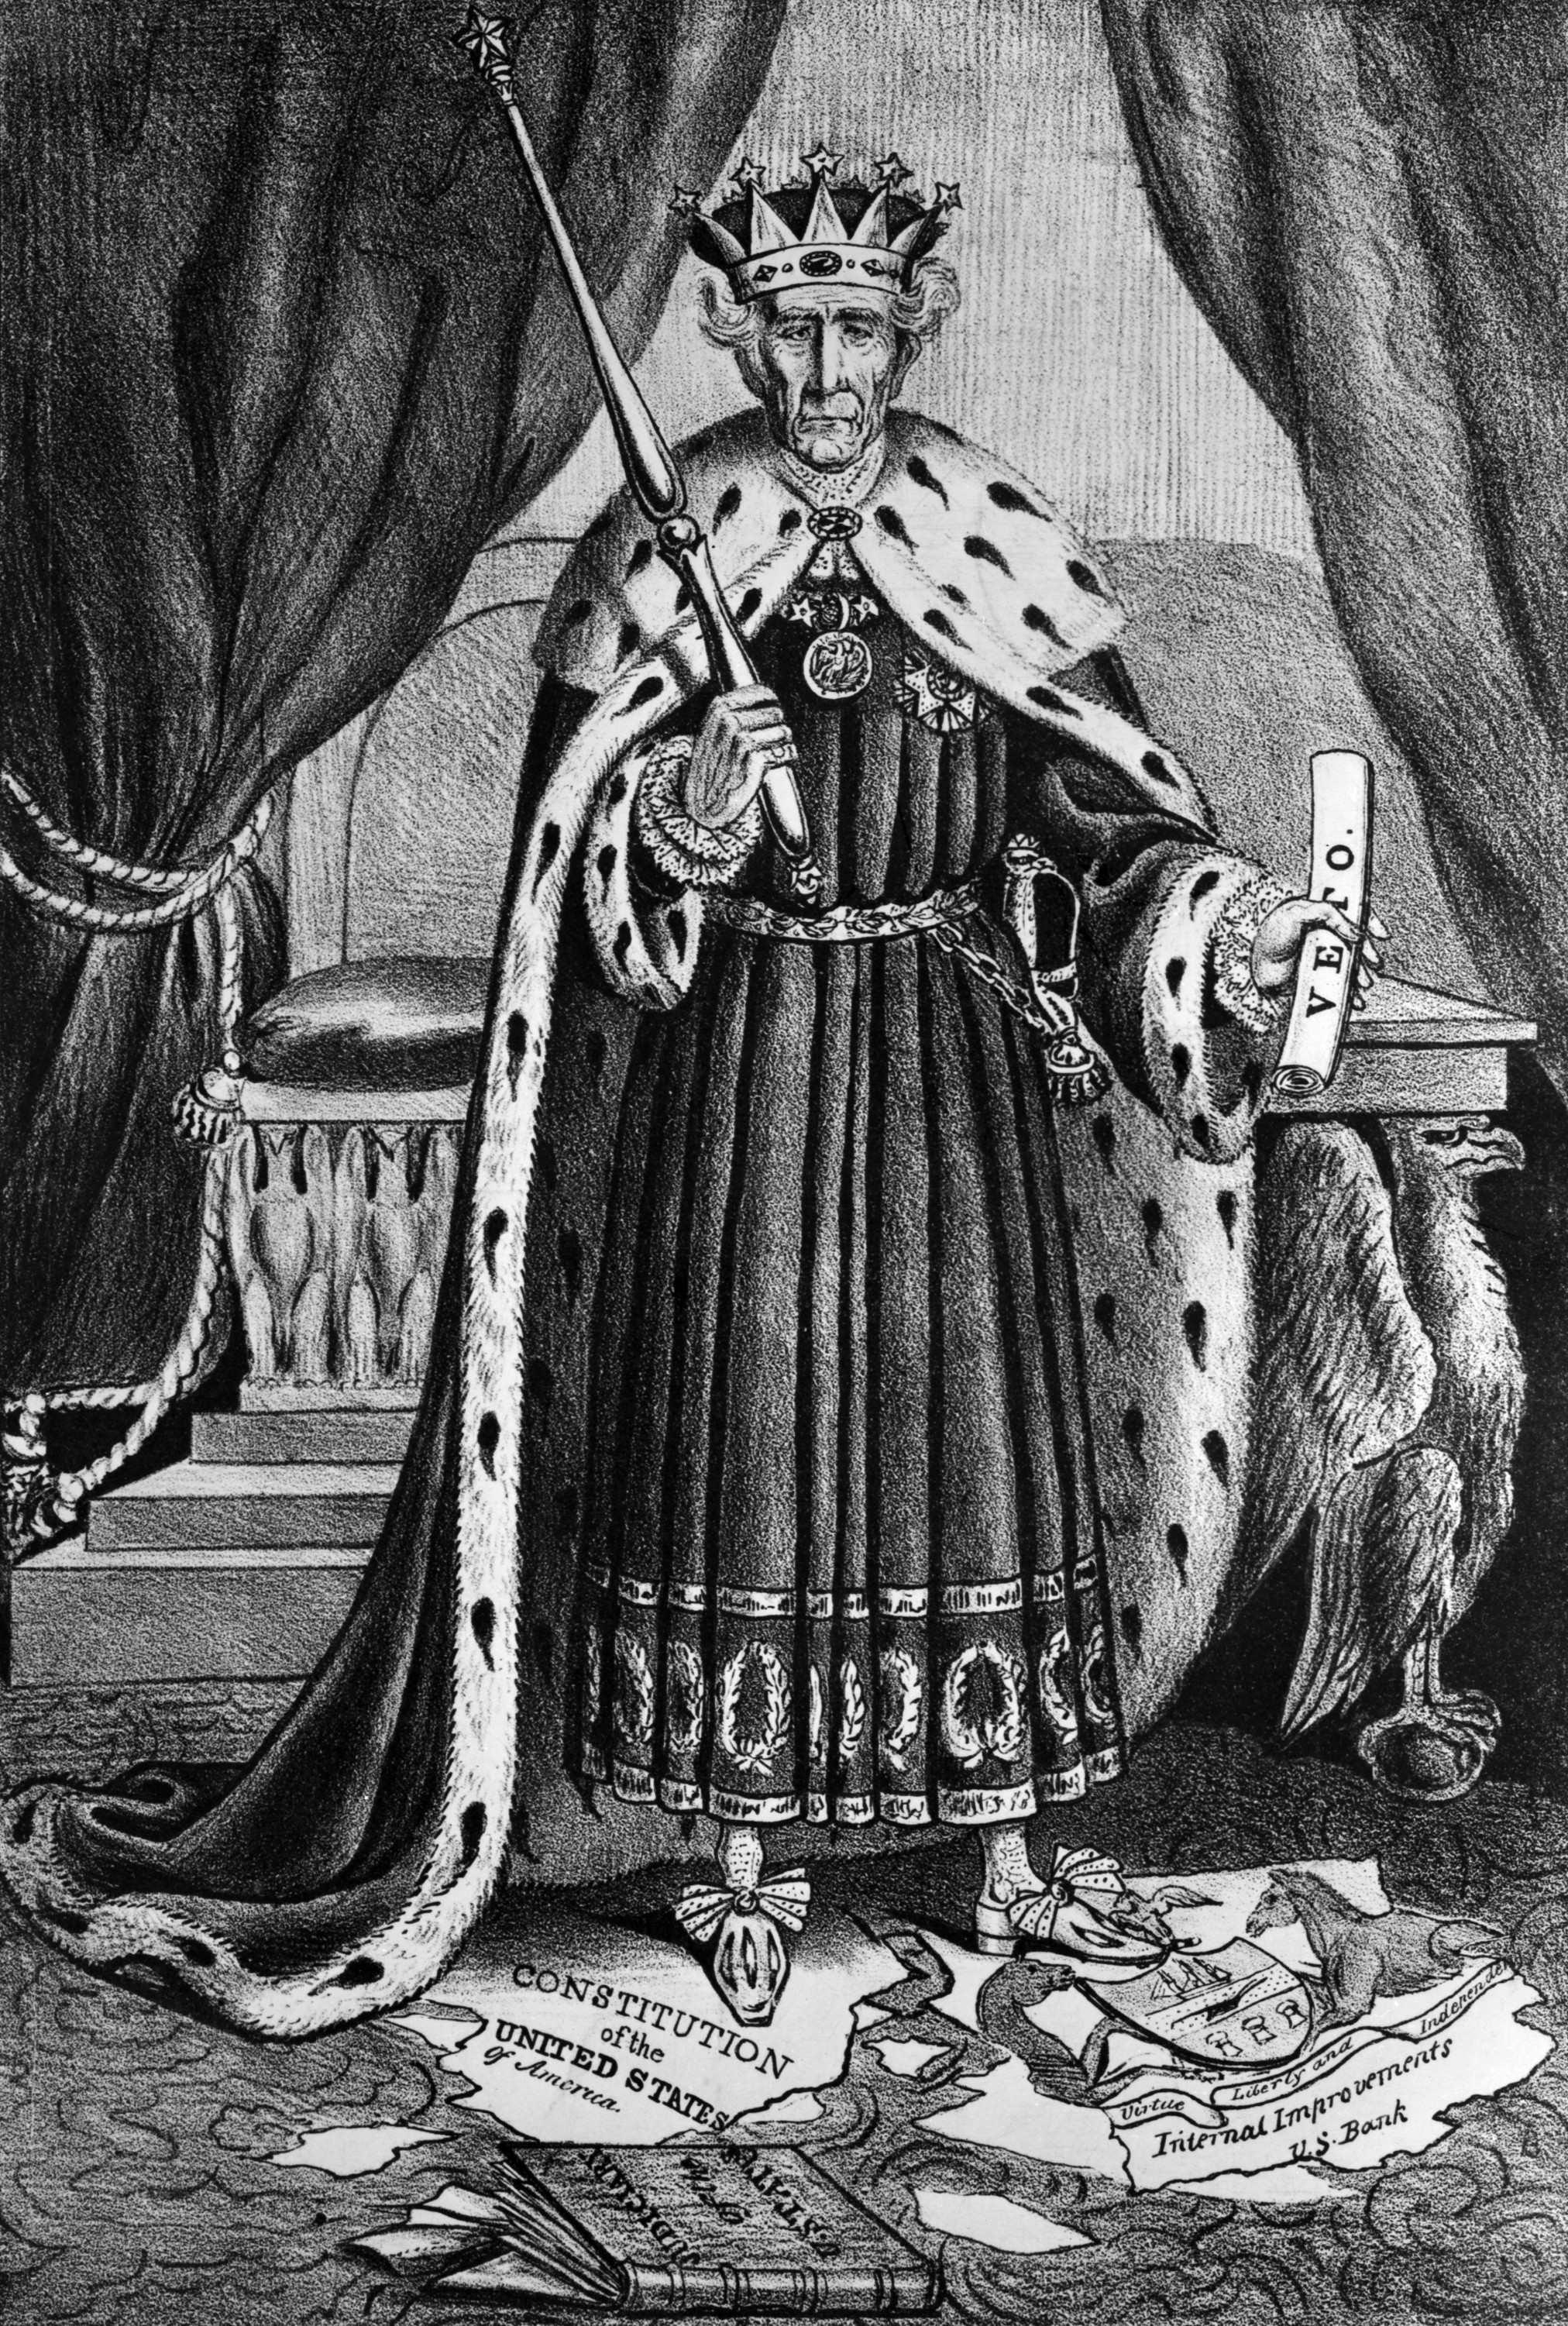 king andrew i andrew jackson dictator political cartoon